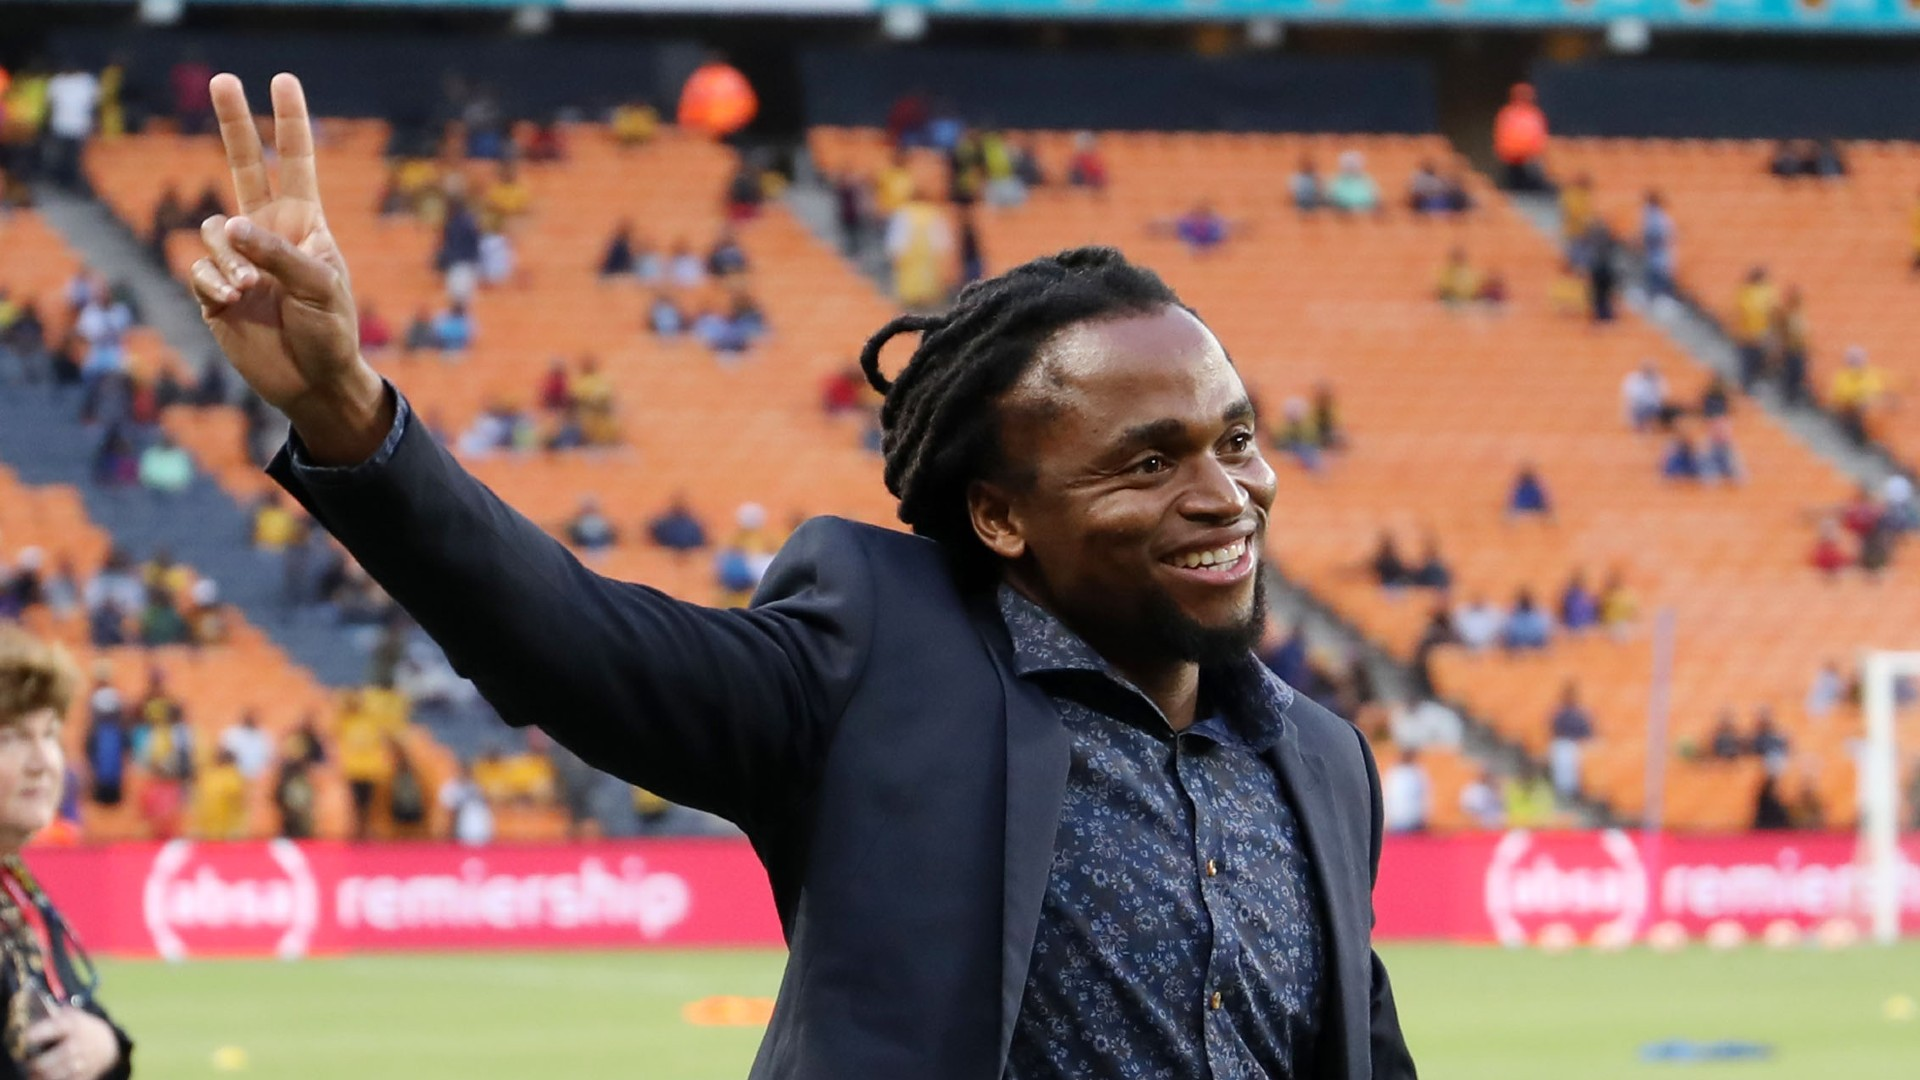 'There's no pressure for me' - Kaizer Chiefs legend Tshabalala continues search for new club